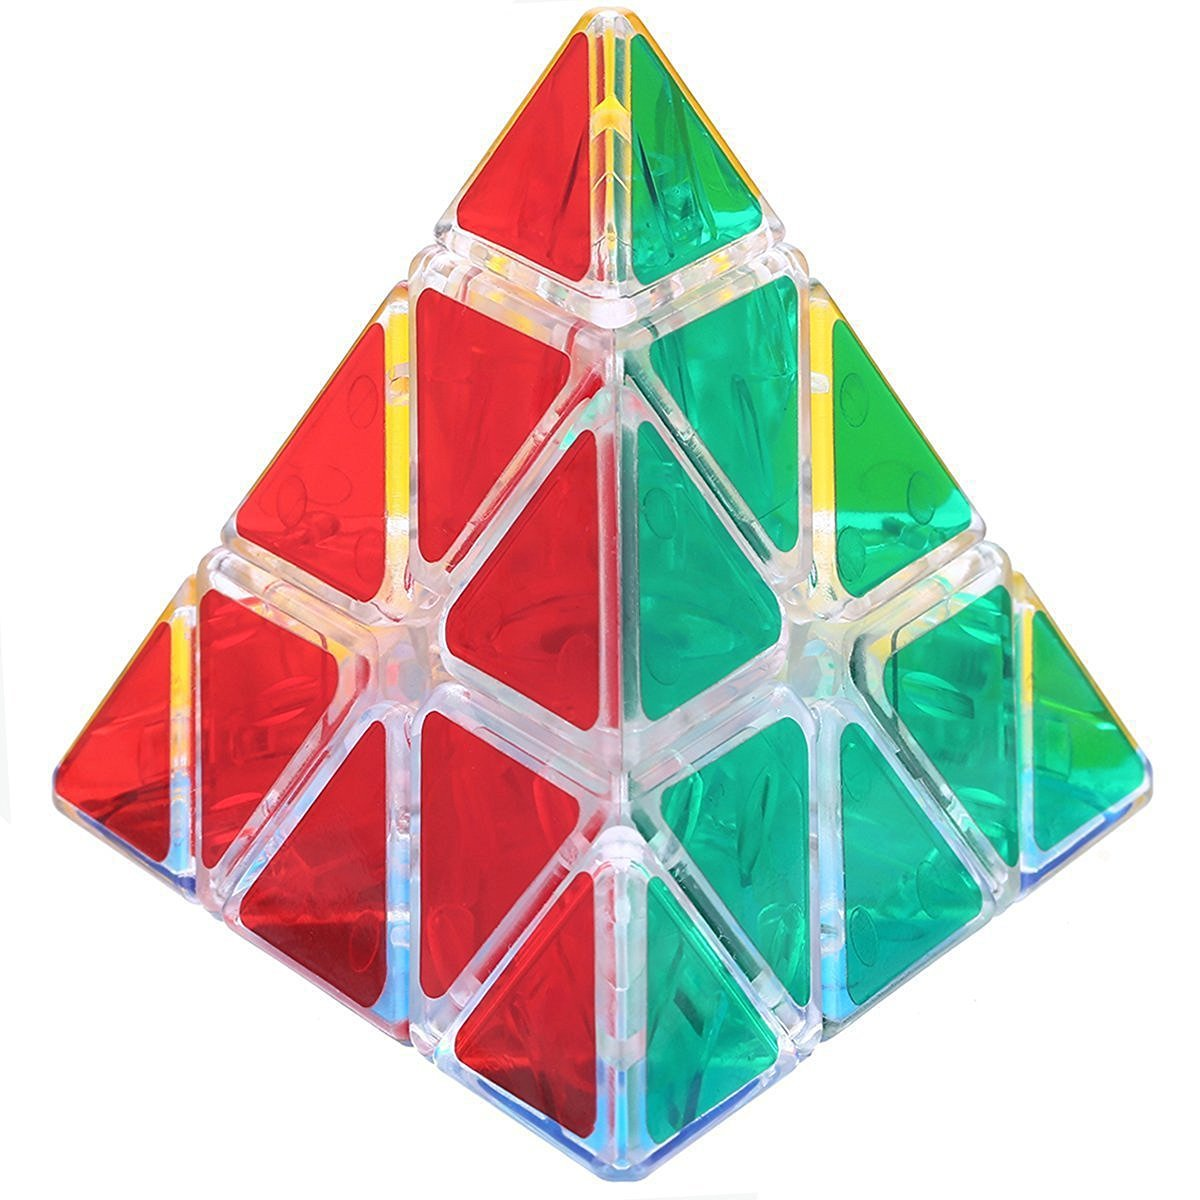 Dreampark Pyraminx Speed Cube Pyramid Triangle Magic Cube Smooth Twisty Puzzle, Transparent